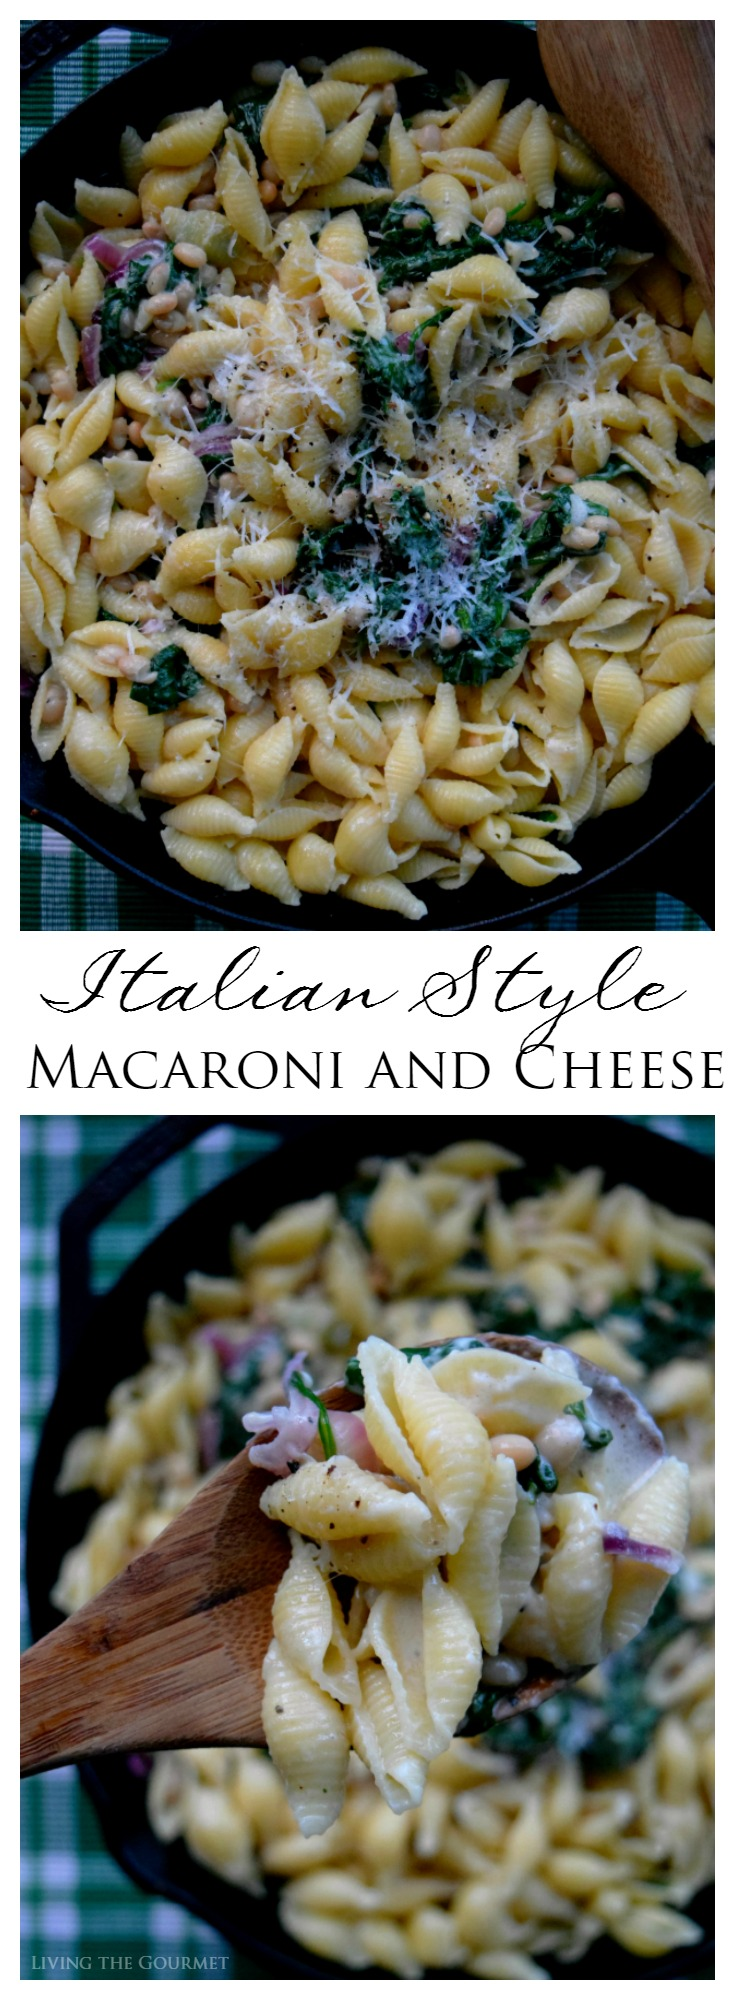 Italian Style Macaroni and Cheese - Living The Gourmet